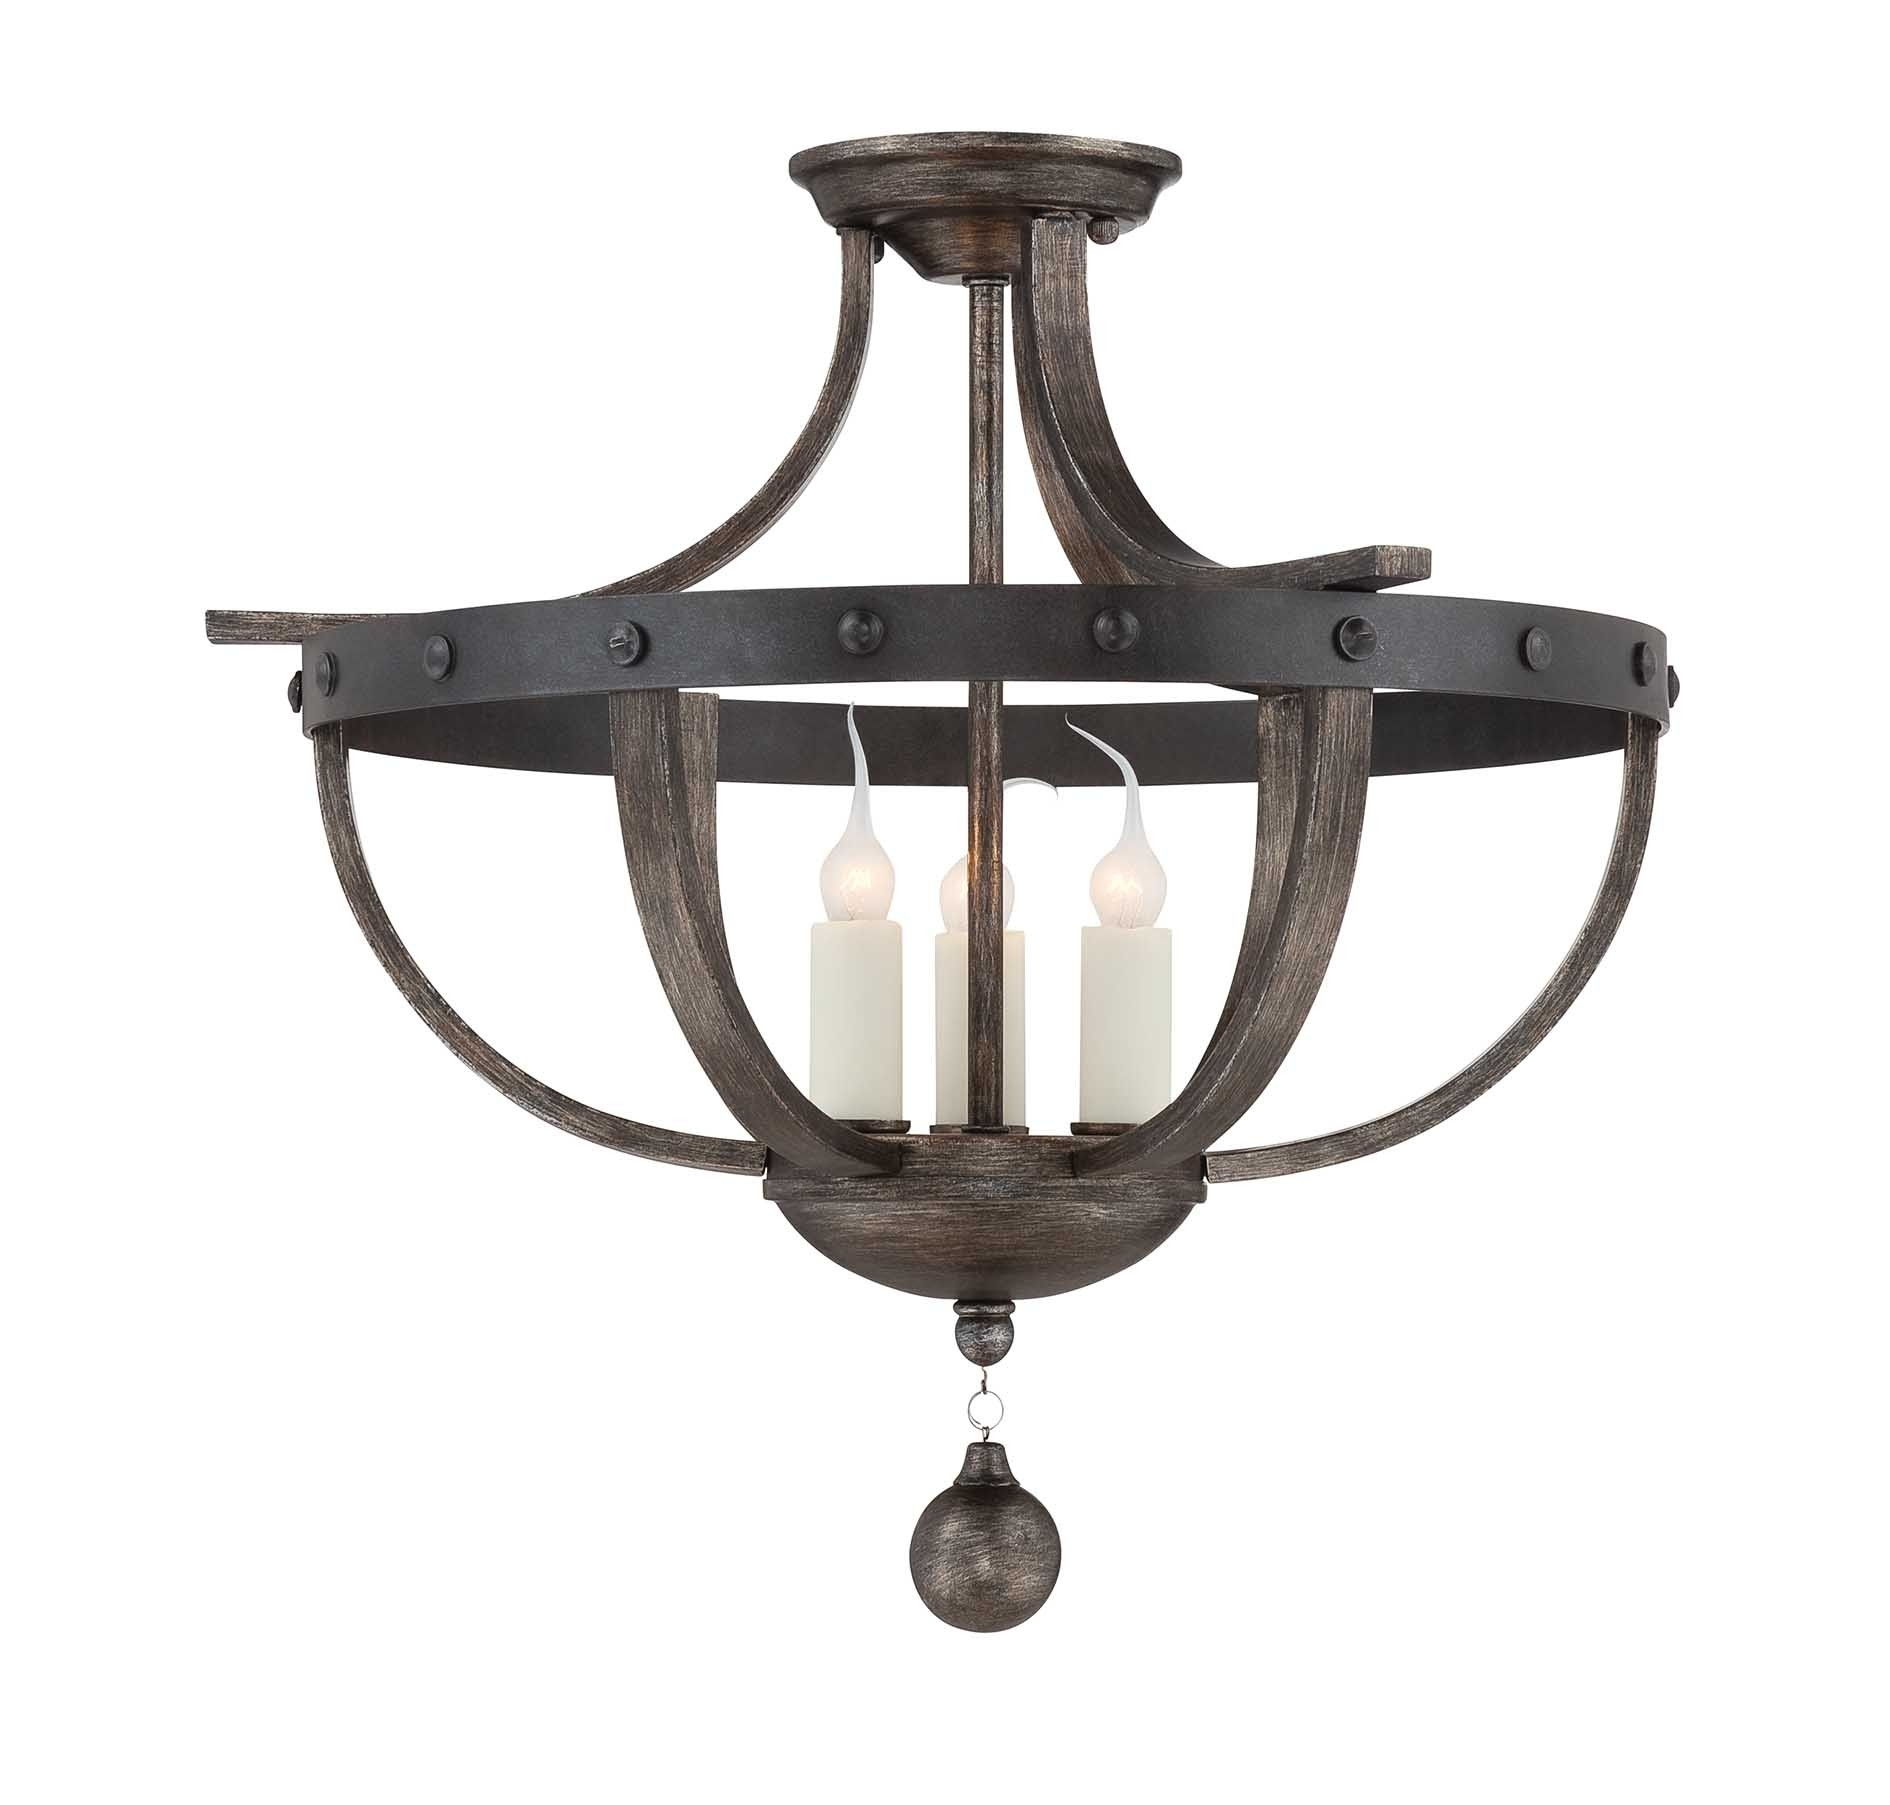 Furniture : Alsace Light Semi Flush Savoy House Outdoor Mount Intended For Outdoor Semi Flush Ceiling Lights (View 13 of 15)